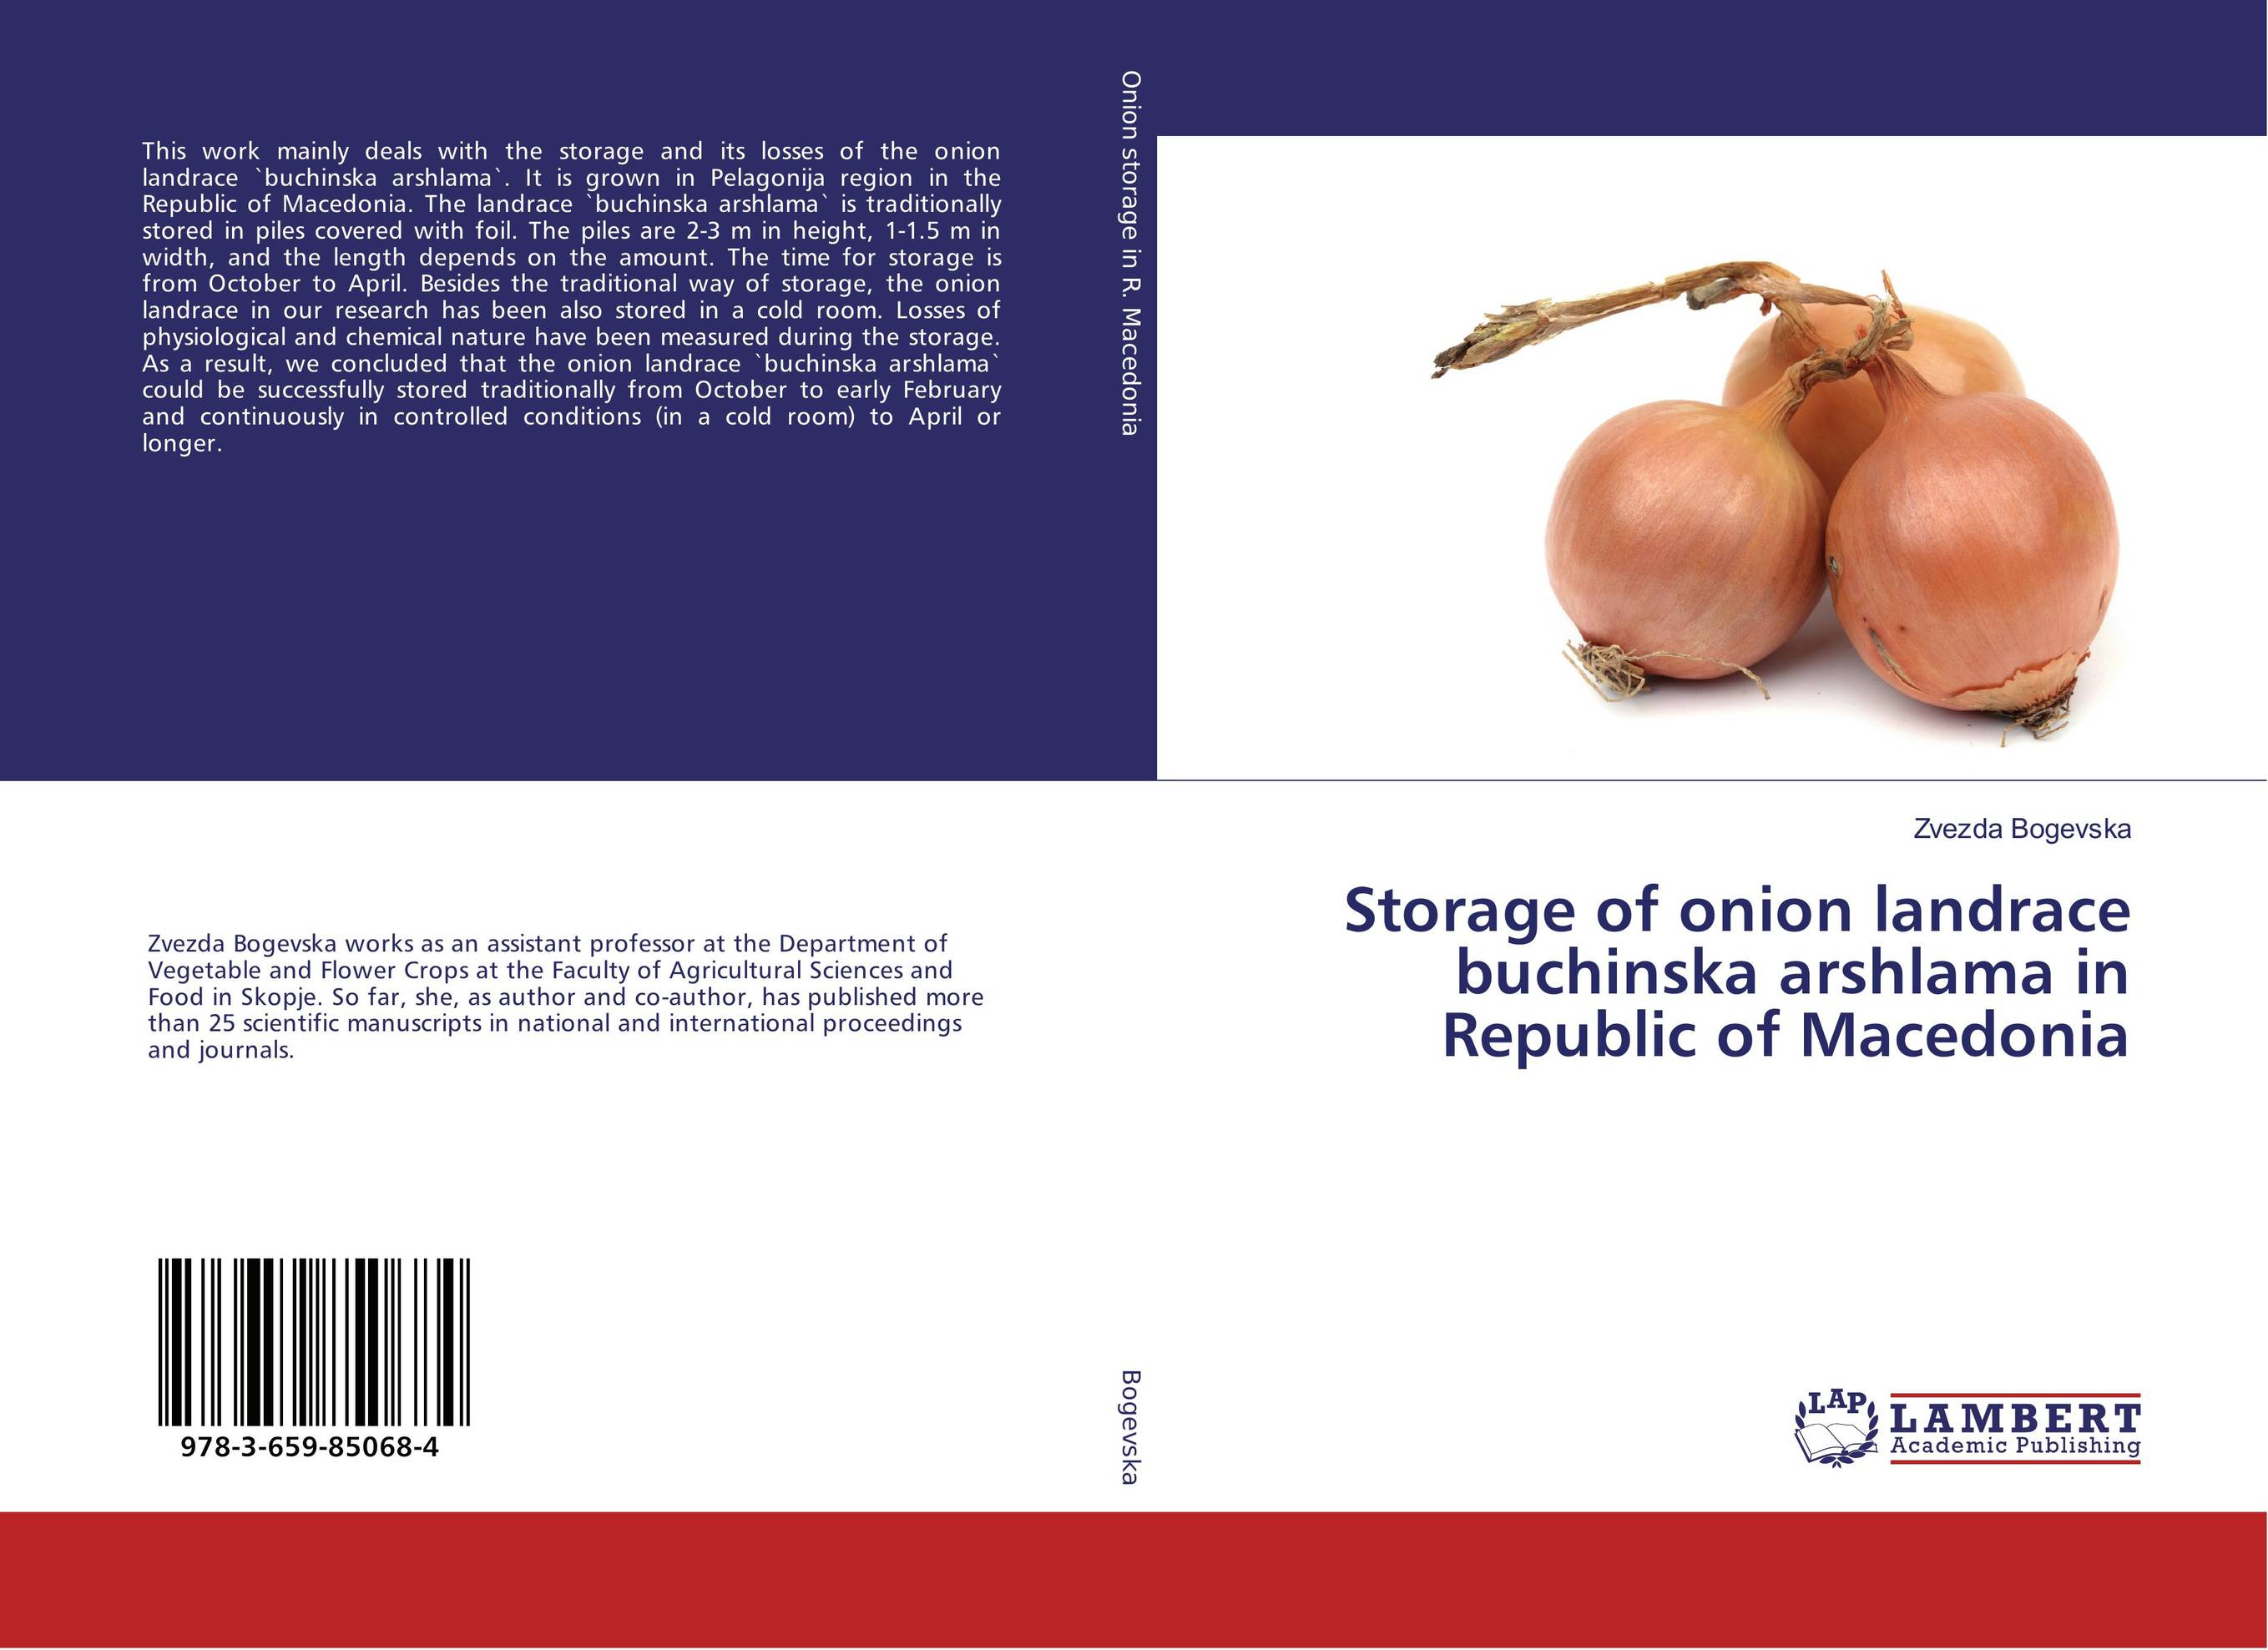 Storage of onion landrace buchinska arshlama in Republic of Macedonia the waters in the republic of macedonia as a business ecosystem